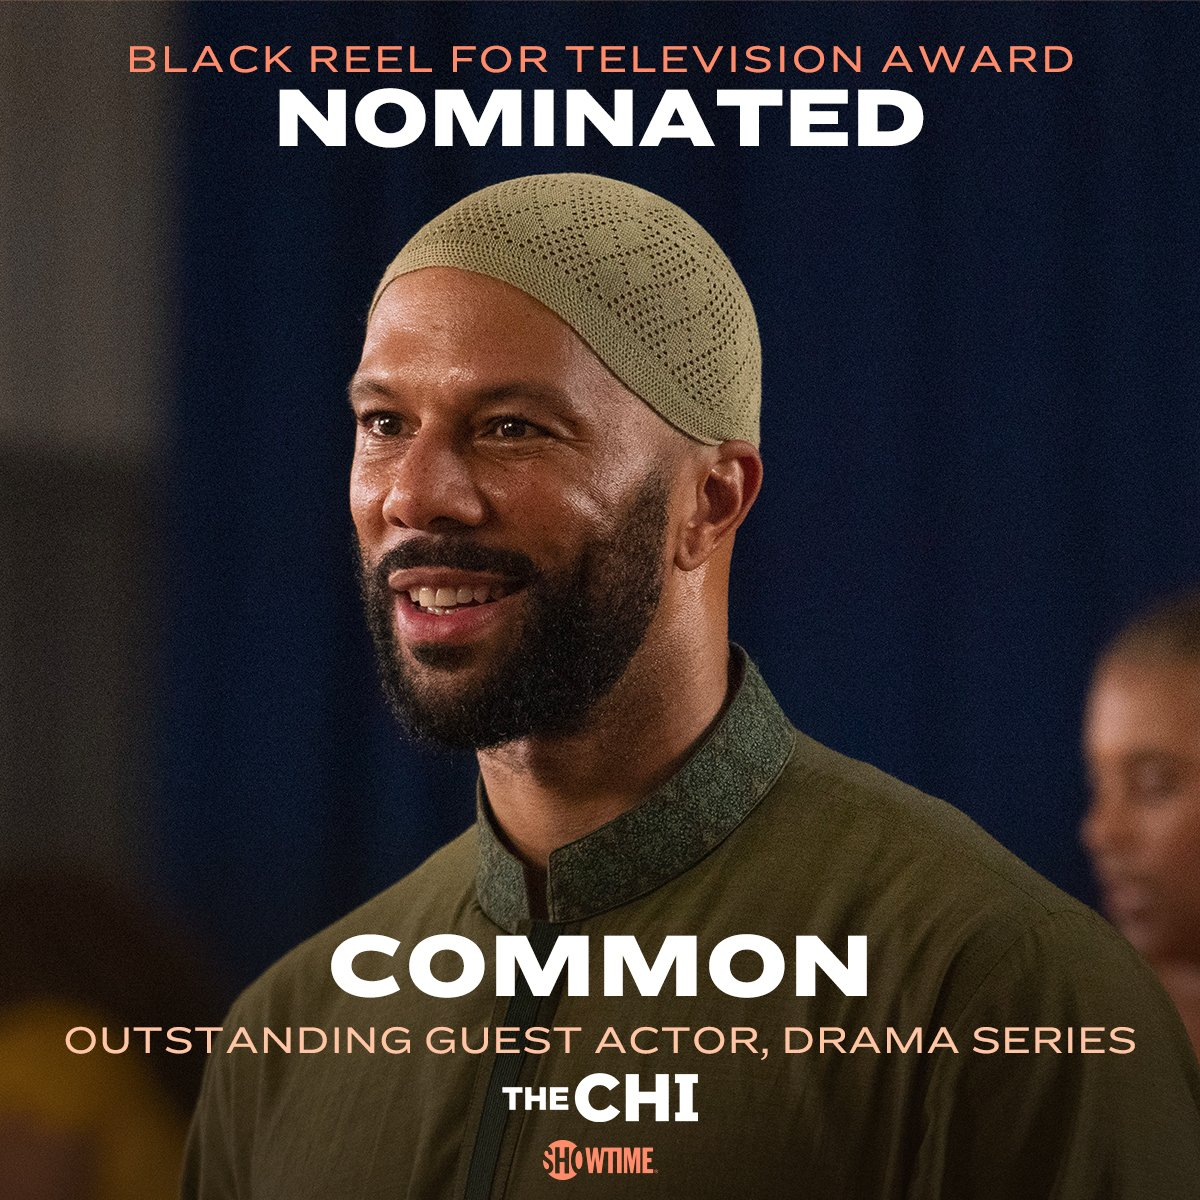 Sending @Common love and congrats on his @BlackReelAwards nomination! 🙌 #TheChi #Showtime